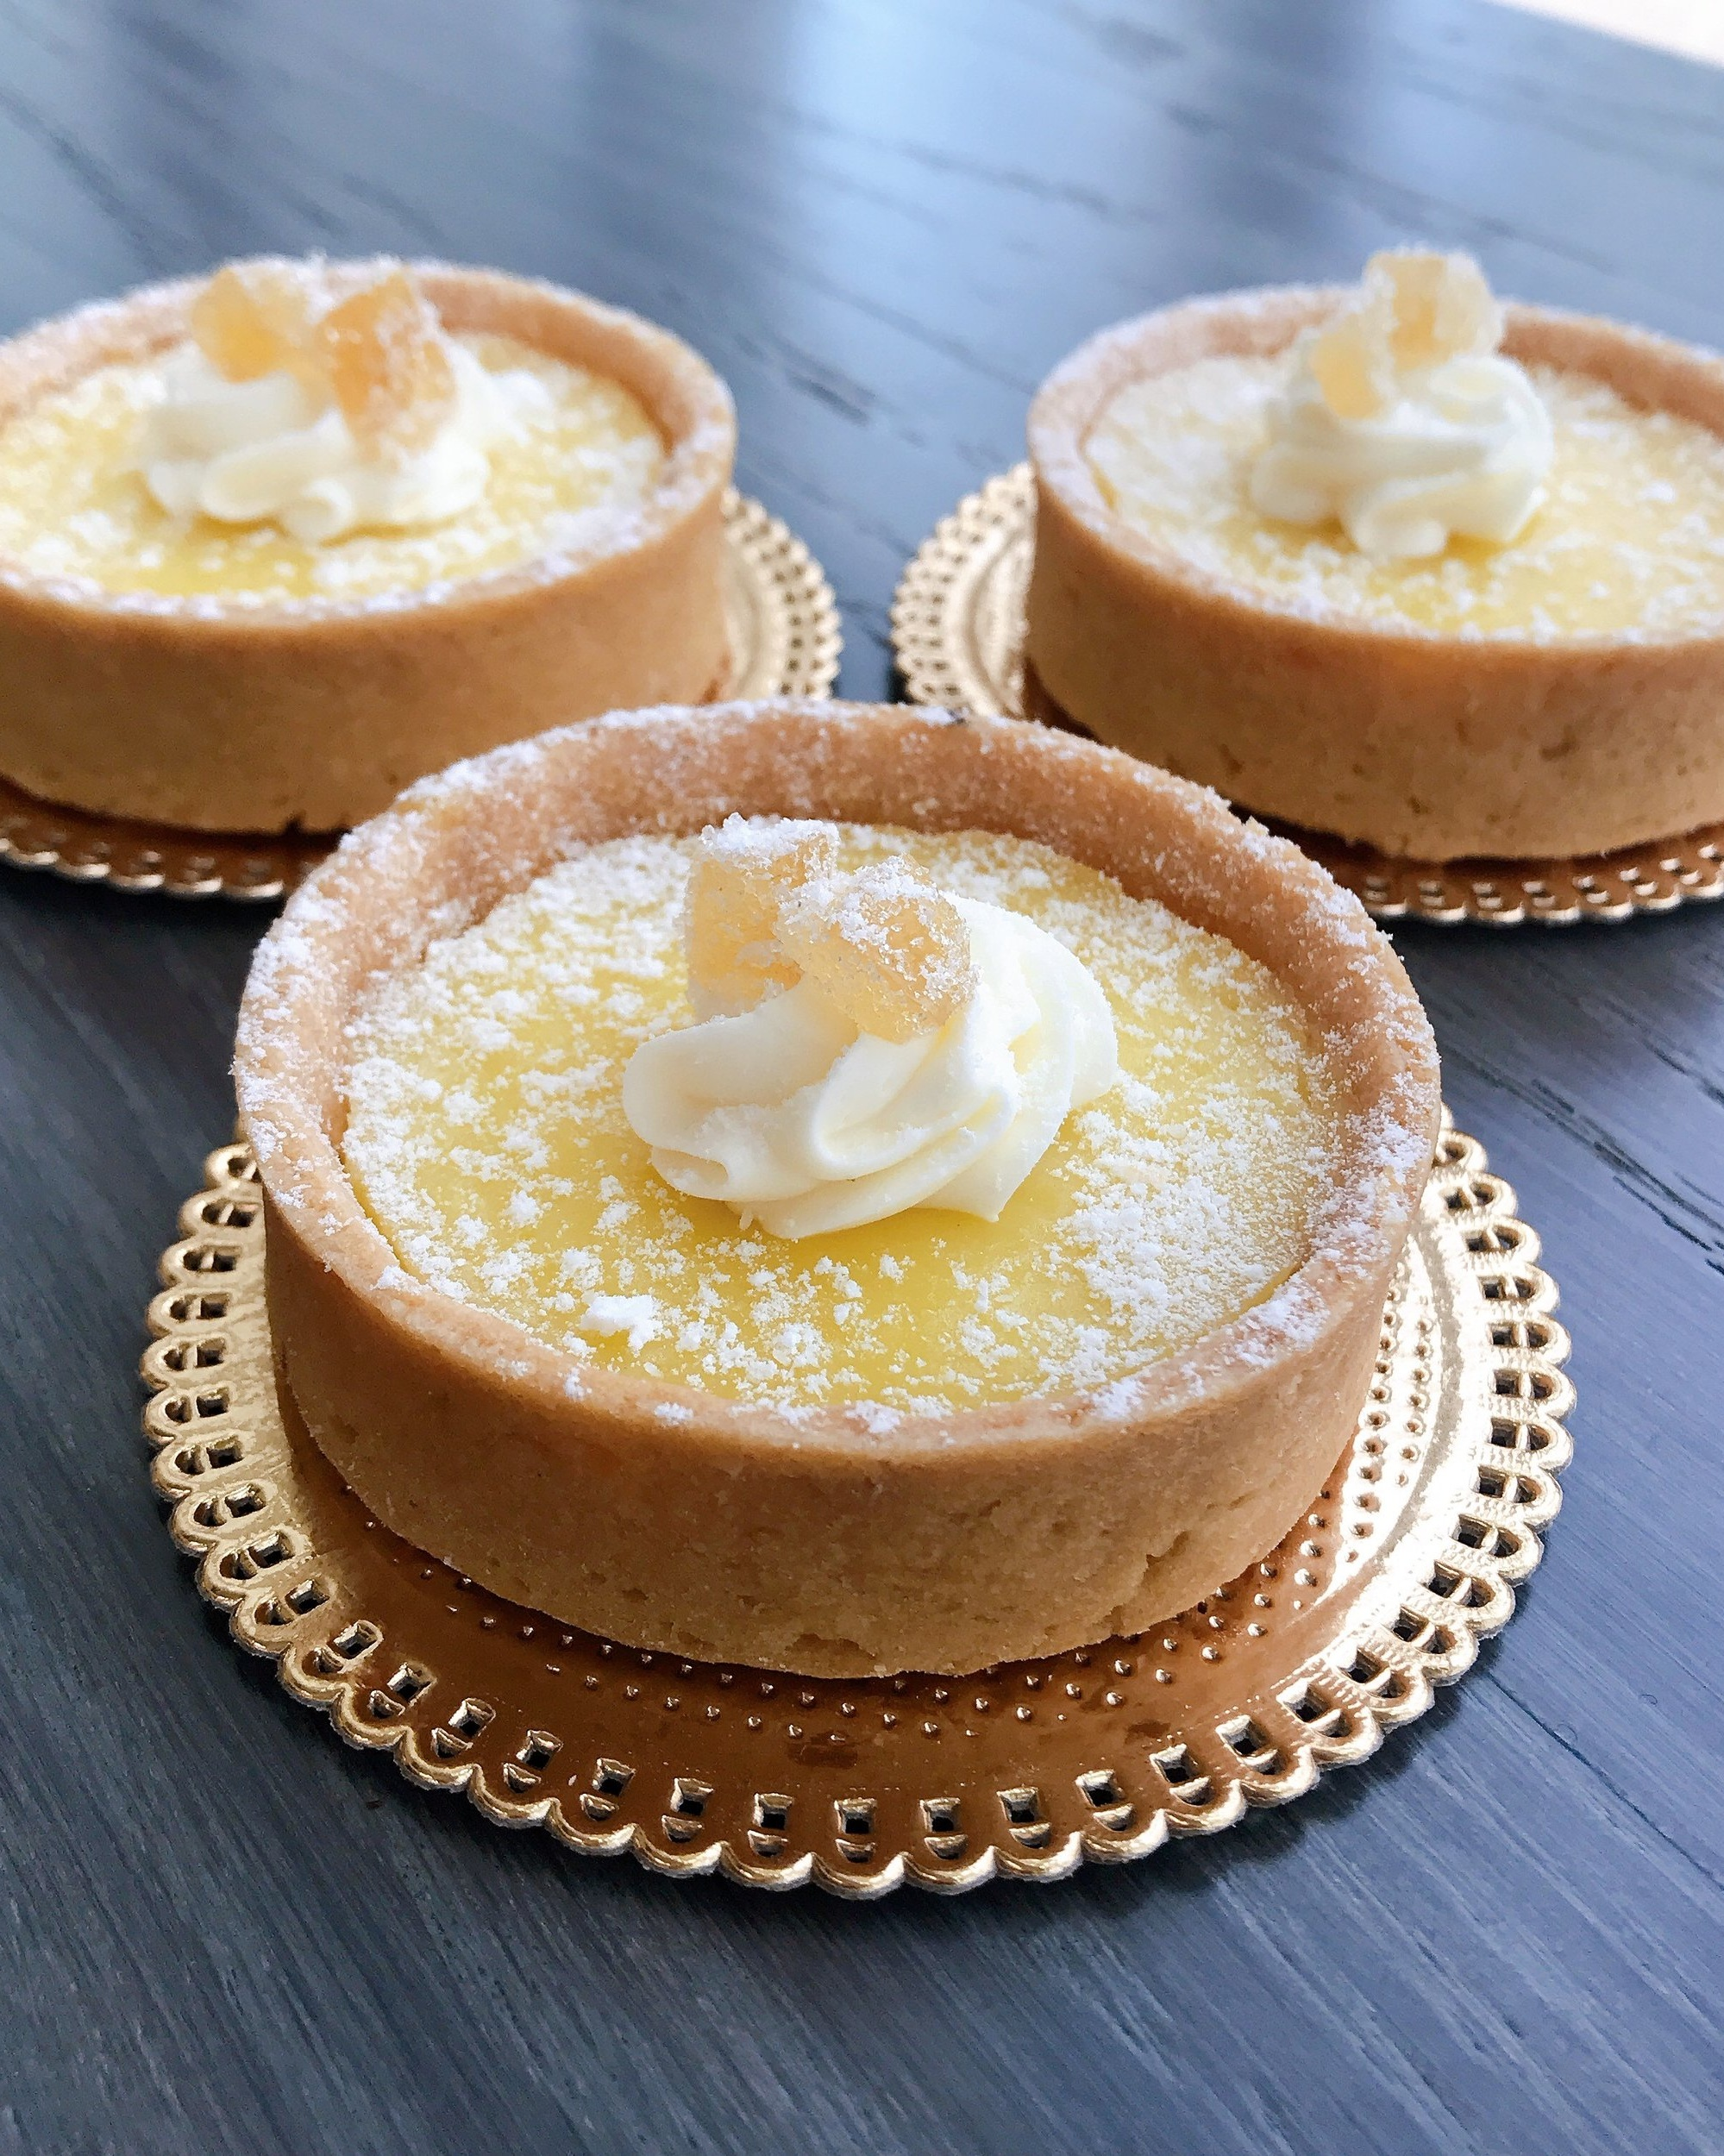 LEMON TARTLETTE - Pastry shell with a lemon flavored filling